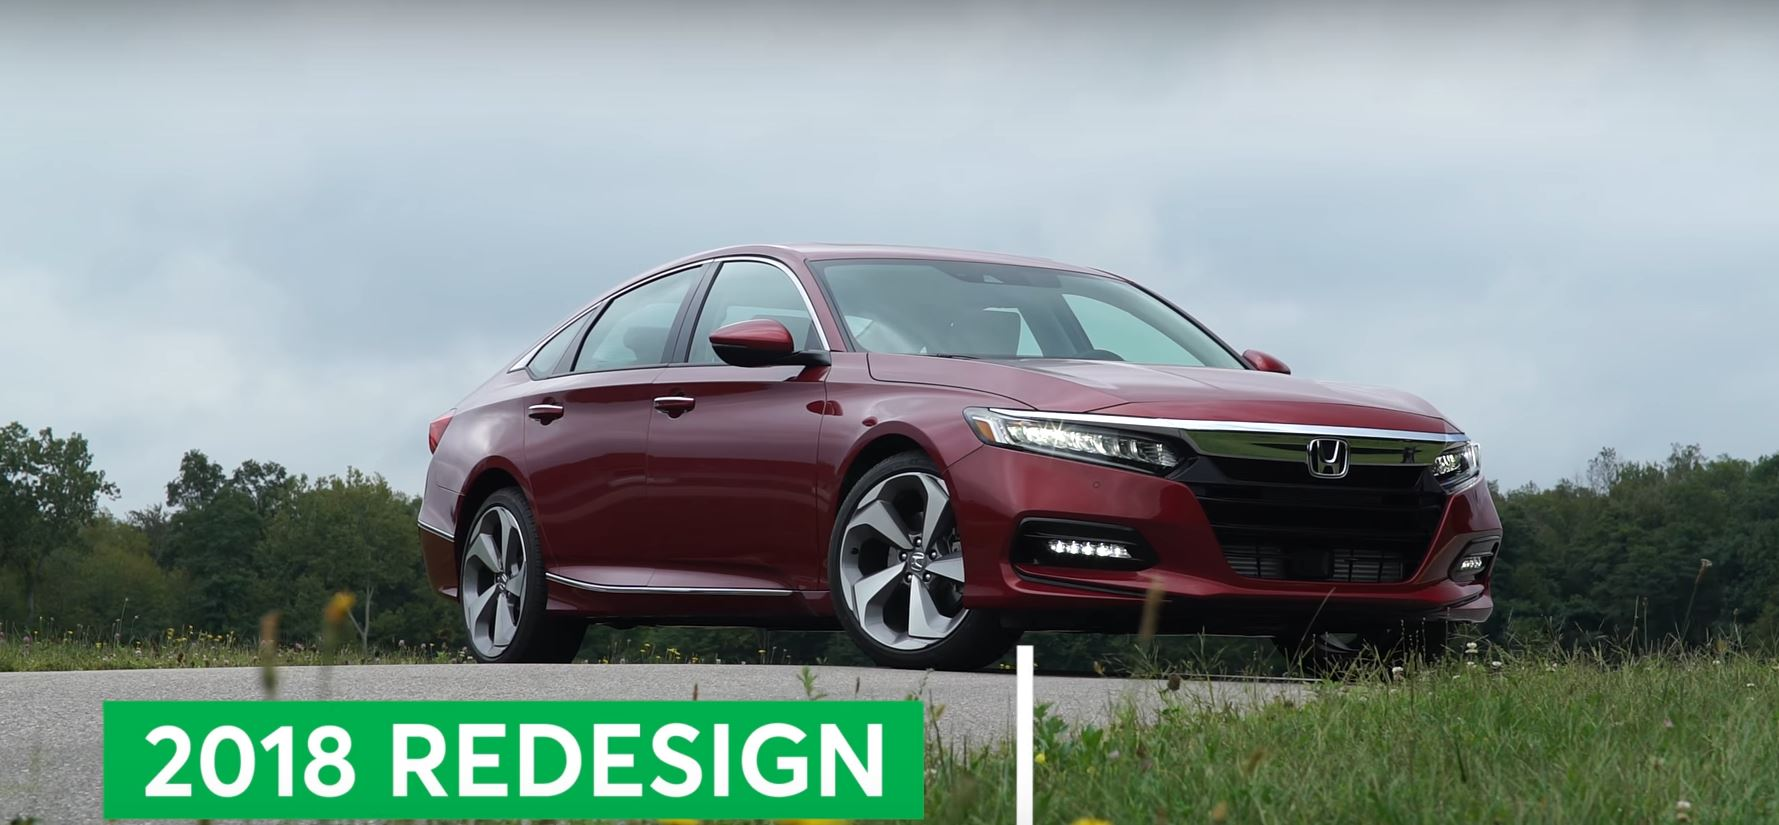 5 Photos 2018 Honda Accord Is Almost A Premium Car Says Consumer Reports